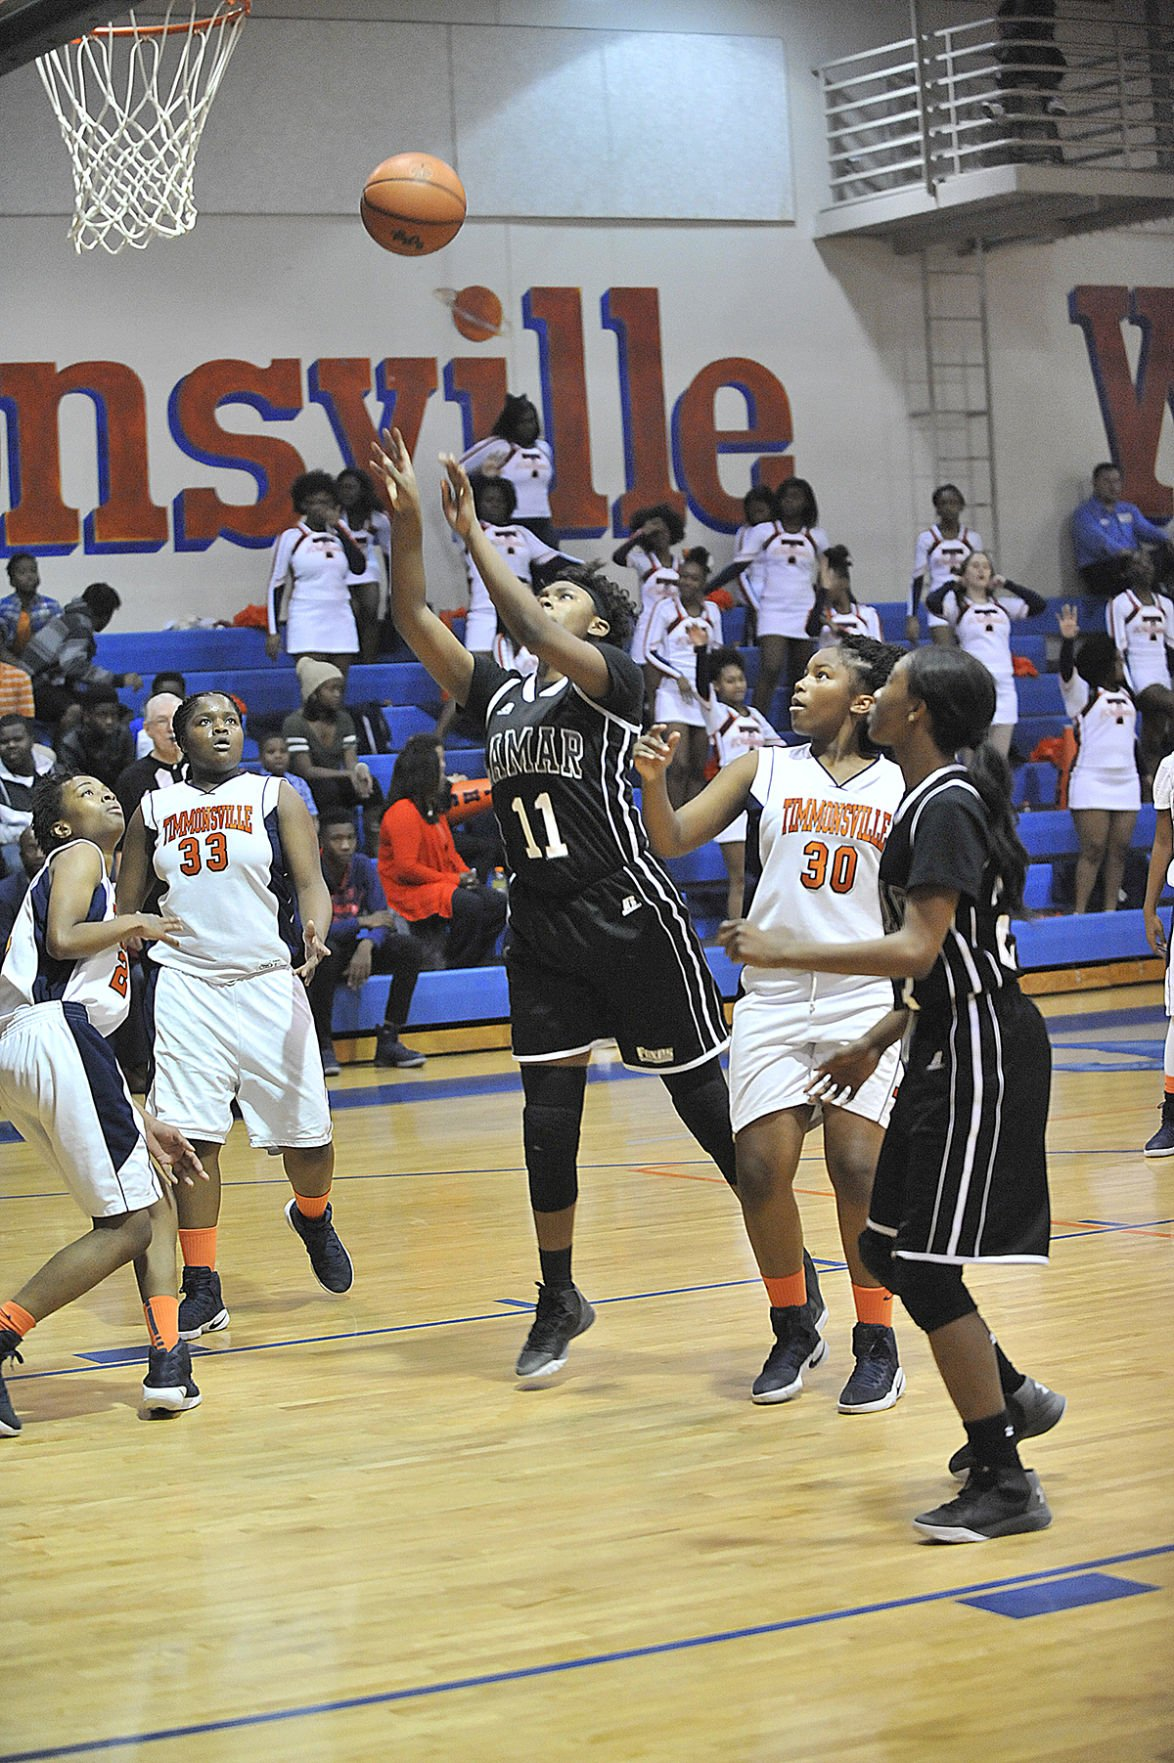 timmonsville women View the schedule, scores, league standings, rankings, roster, team stats and articles for the timmonsville whirlwinds basketball team on maxpreps.